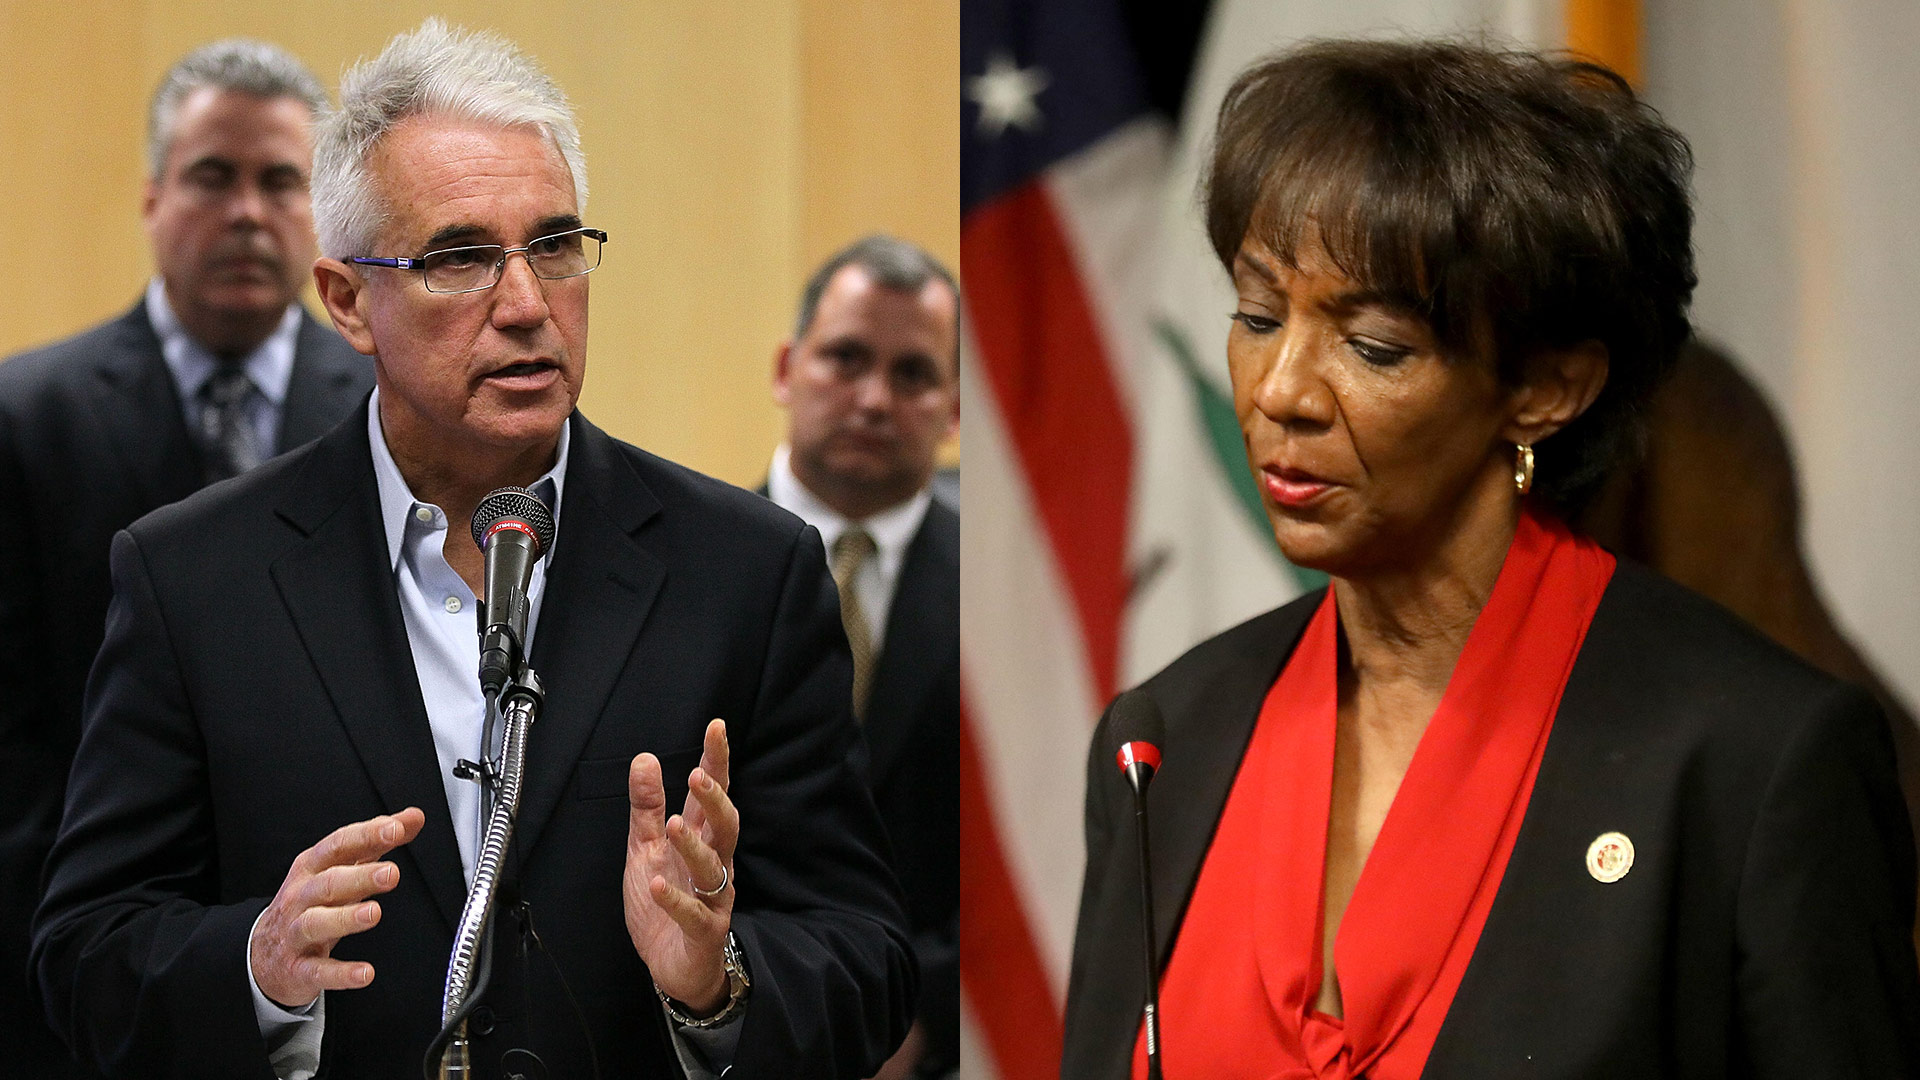 George Gascon speaks at a news conference at the San Francisco Hall of Justice May 5, 2010 in San Francisco, California. Jackie Lacey addresses the media at the Hall of Justice in downtown Los Angeles on Oct. 6, 2020.   Justin Sullivan/Genaro Molina/Getty